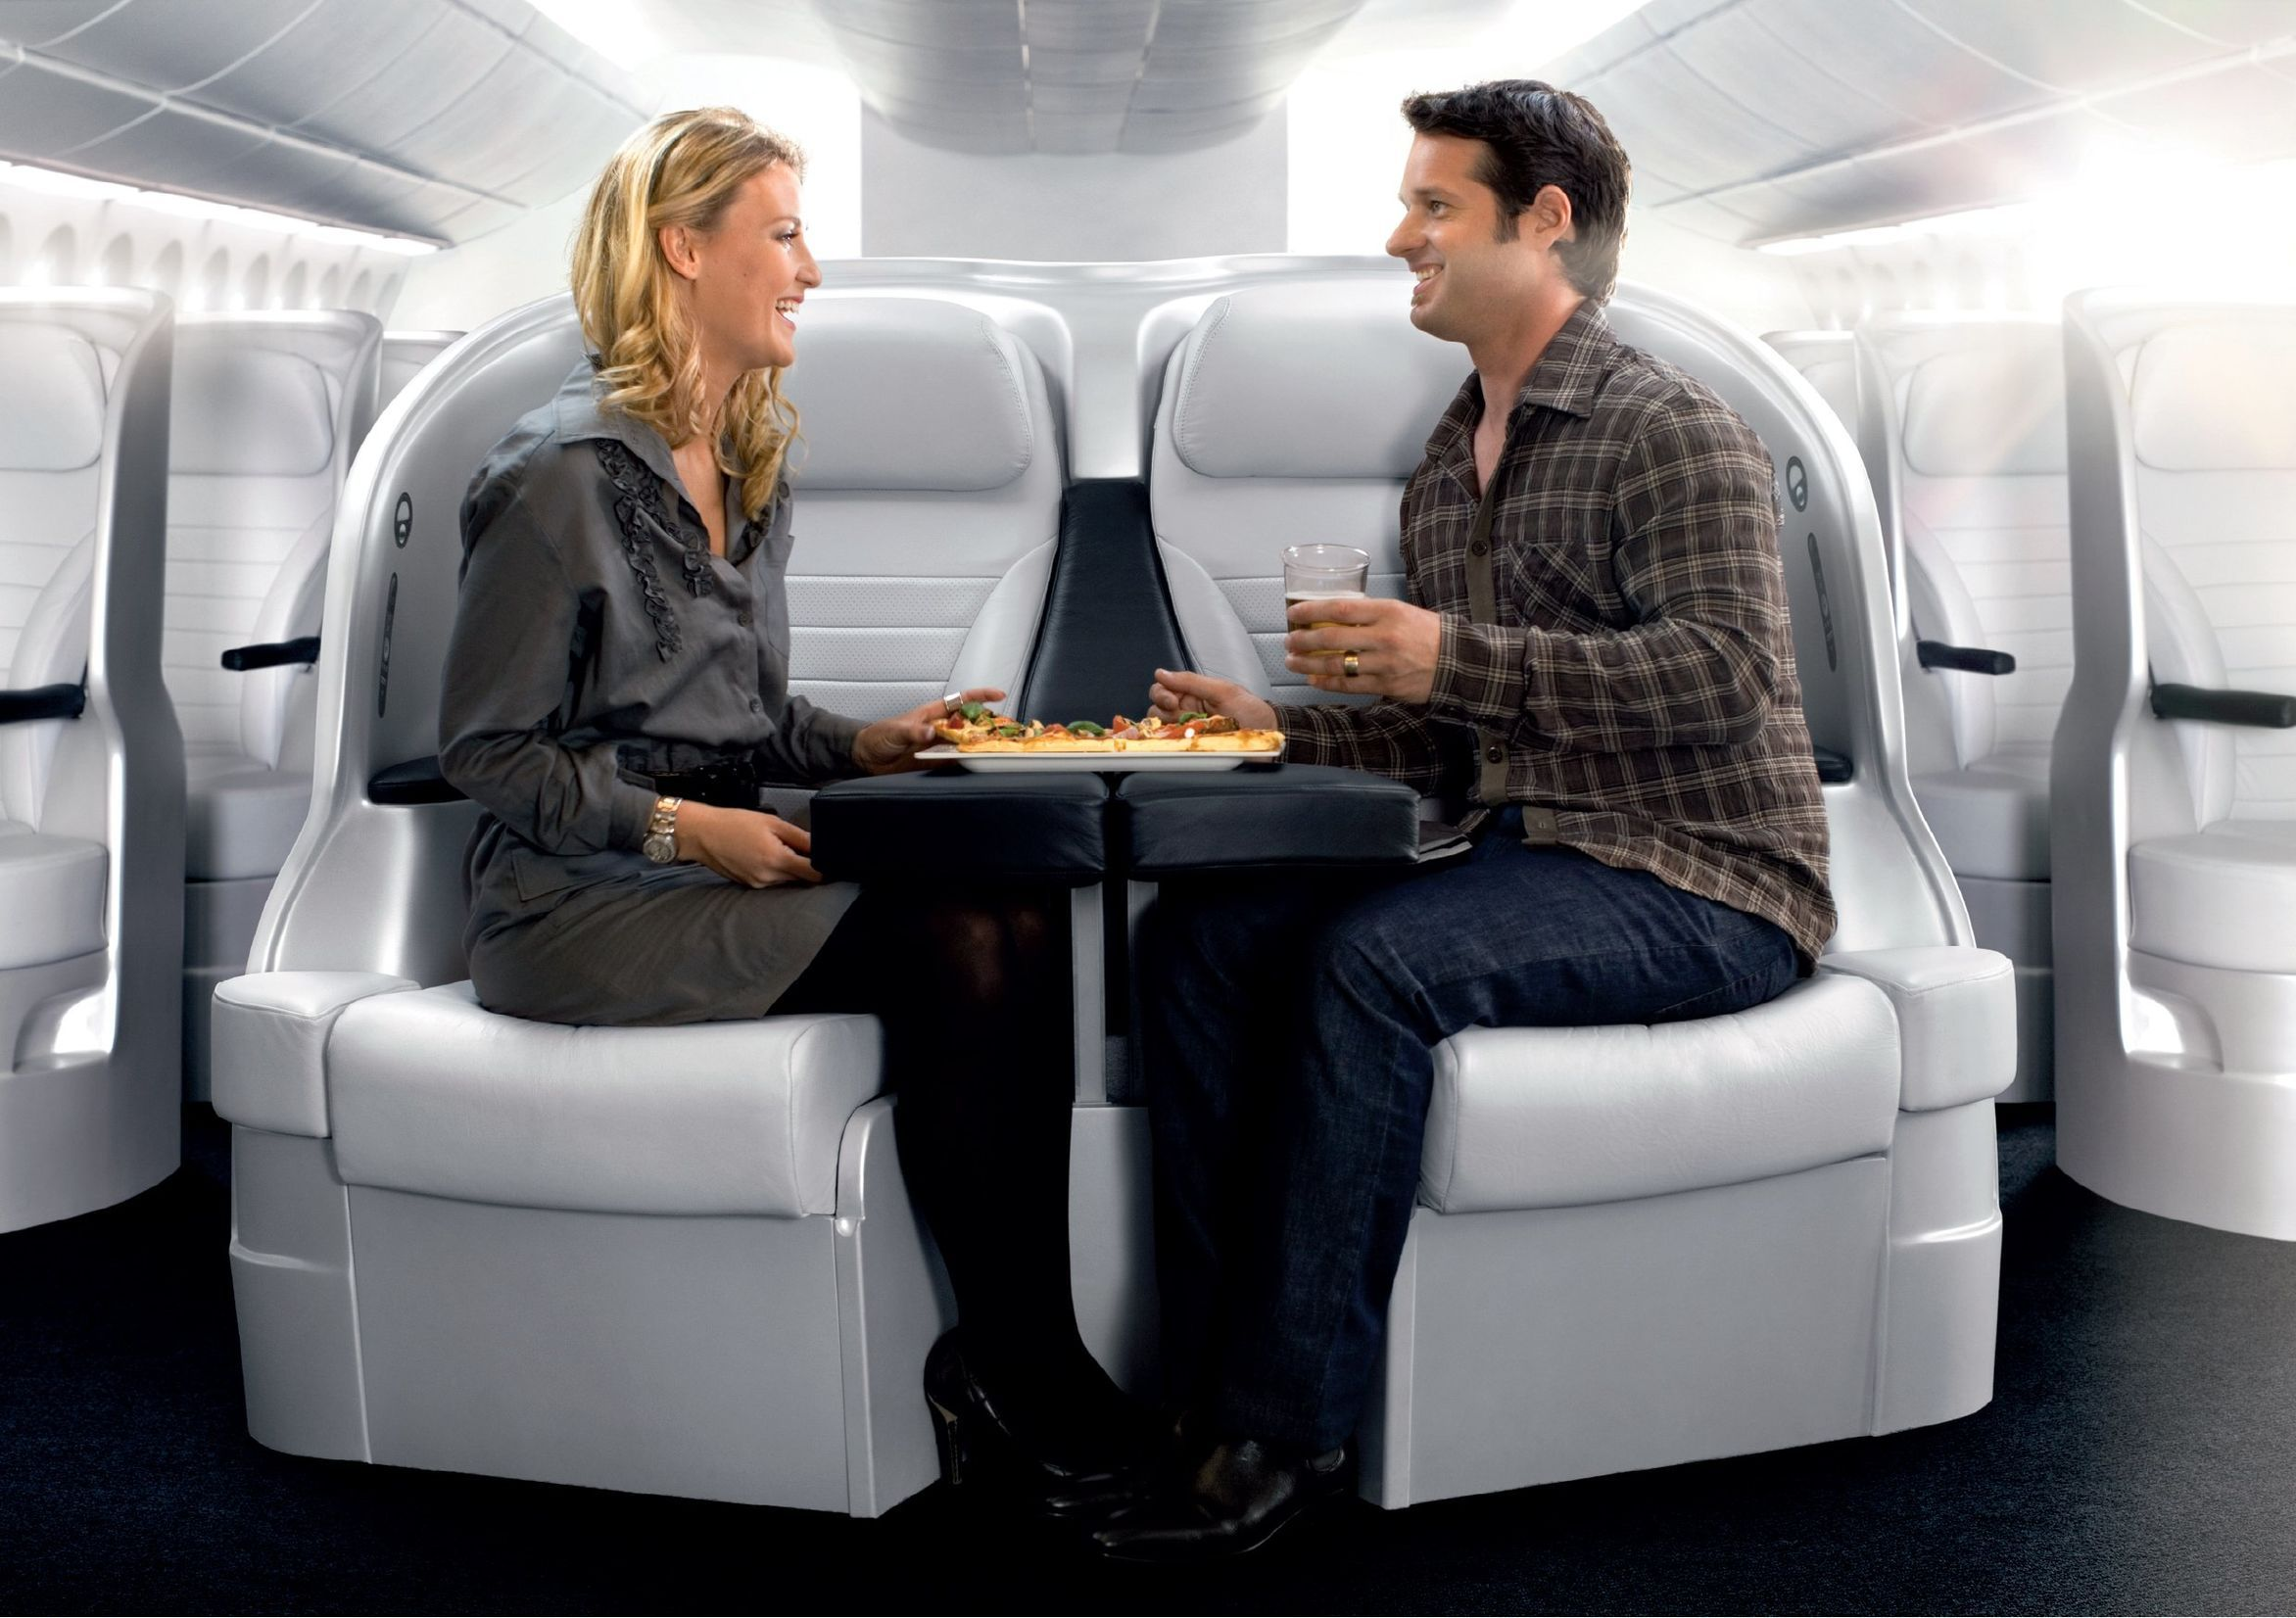 Air New Zealand Boeing 777 300 Premium Economy Space Seat With